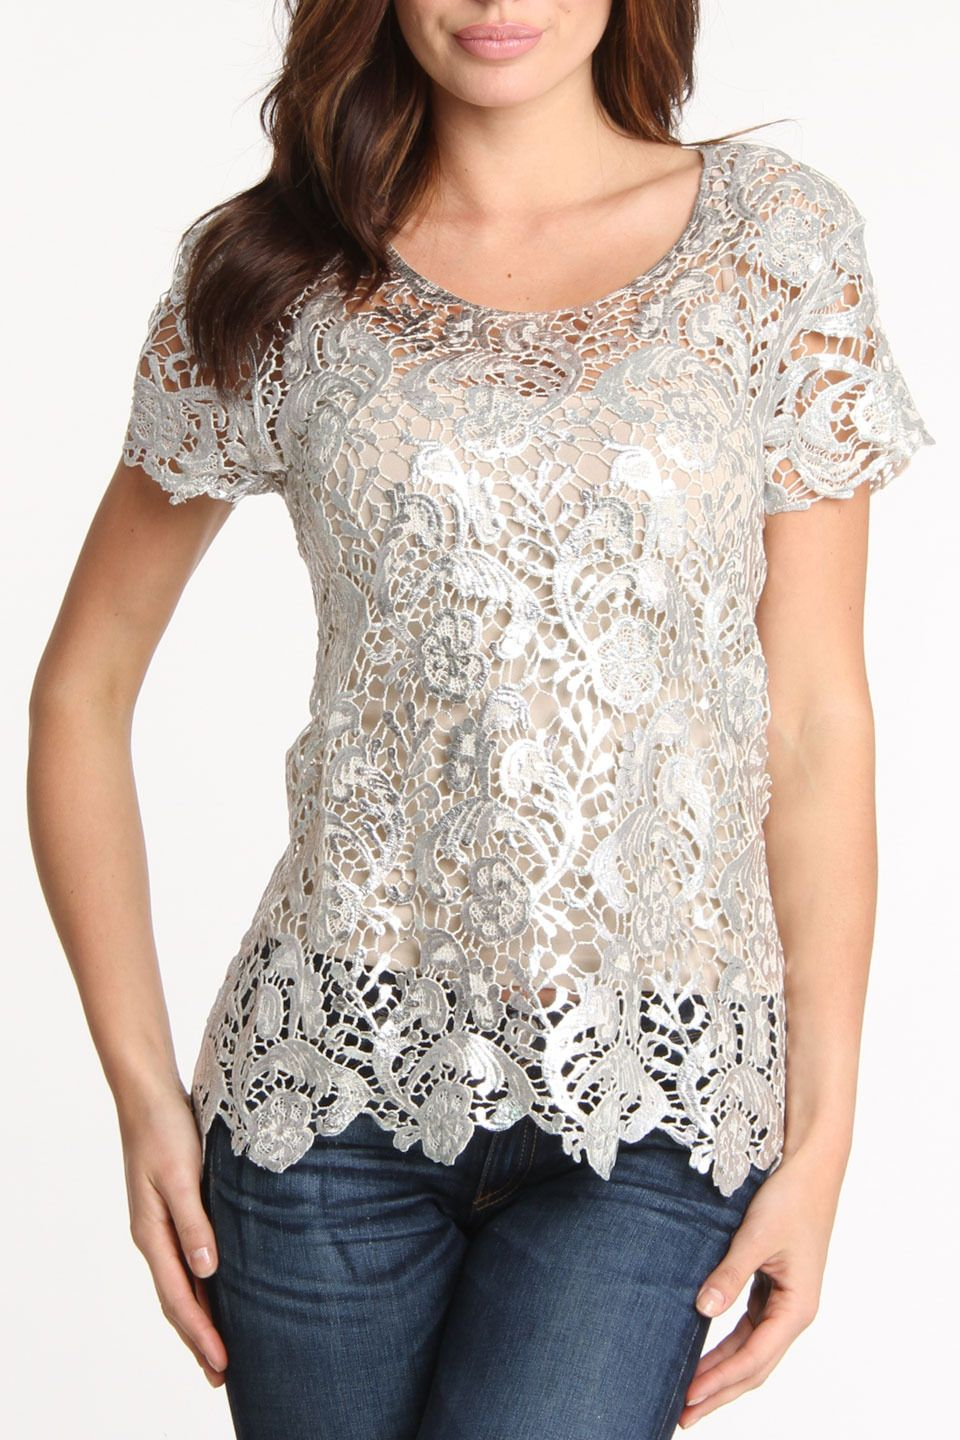 Hugging kisses Foil Printed Venetian Lace Tunic in Silver - Beyond the Rack